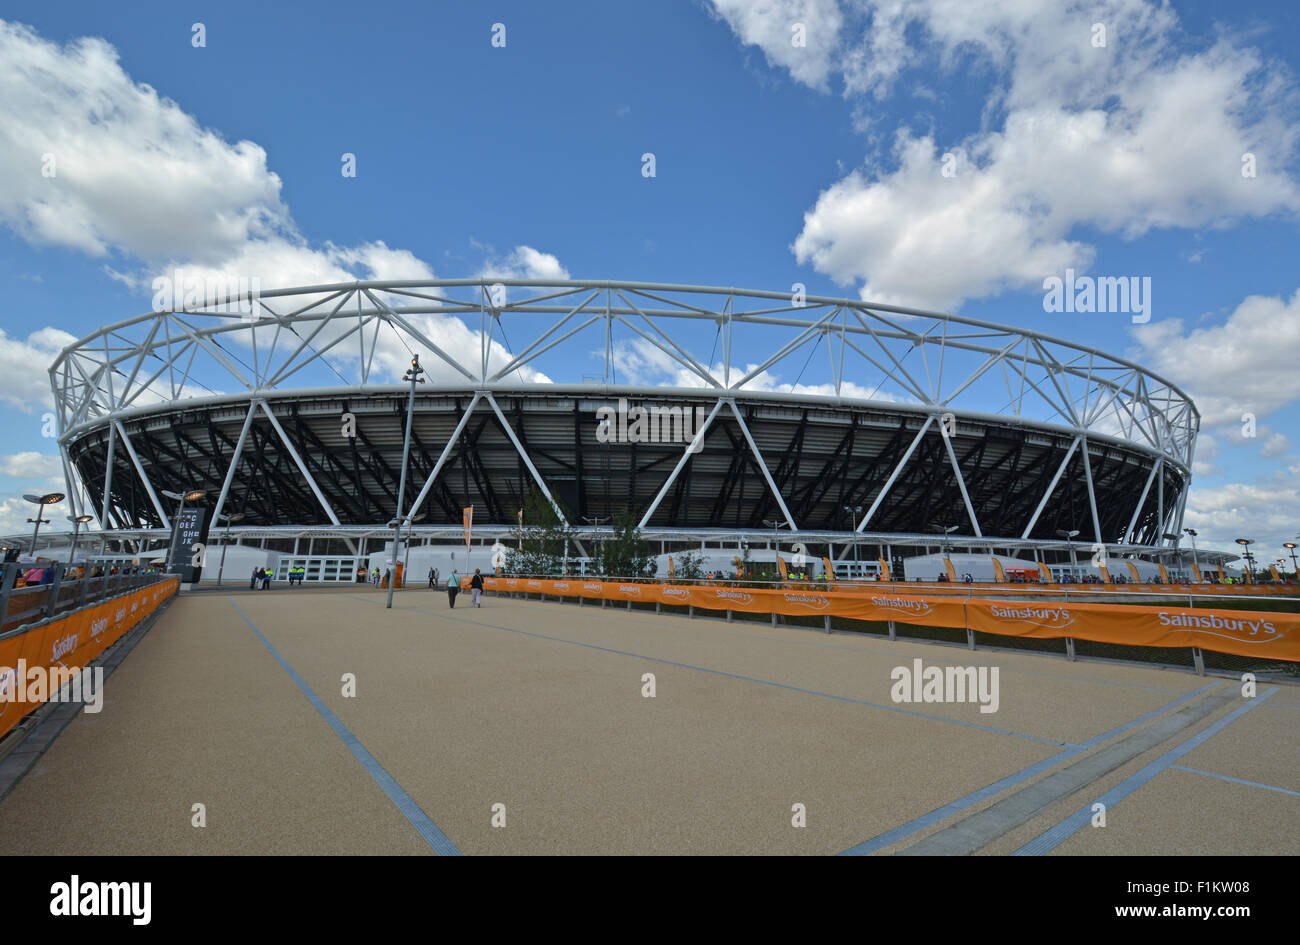 Sainsbury's Anniversary Games at the Queen Elizabeth Olympic Stadium, Stratford, London - Stock Image